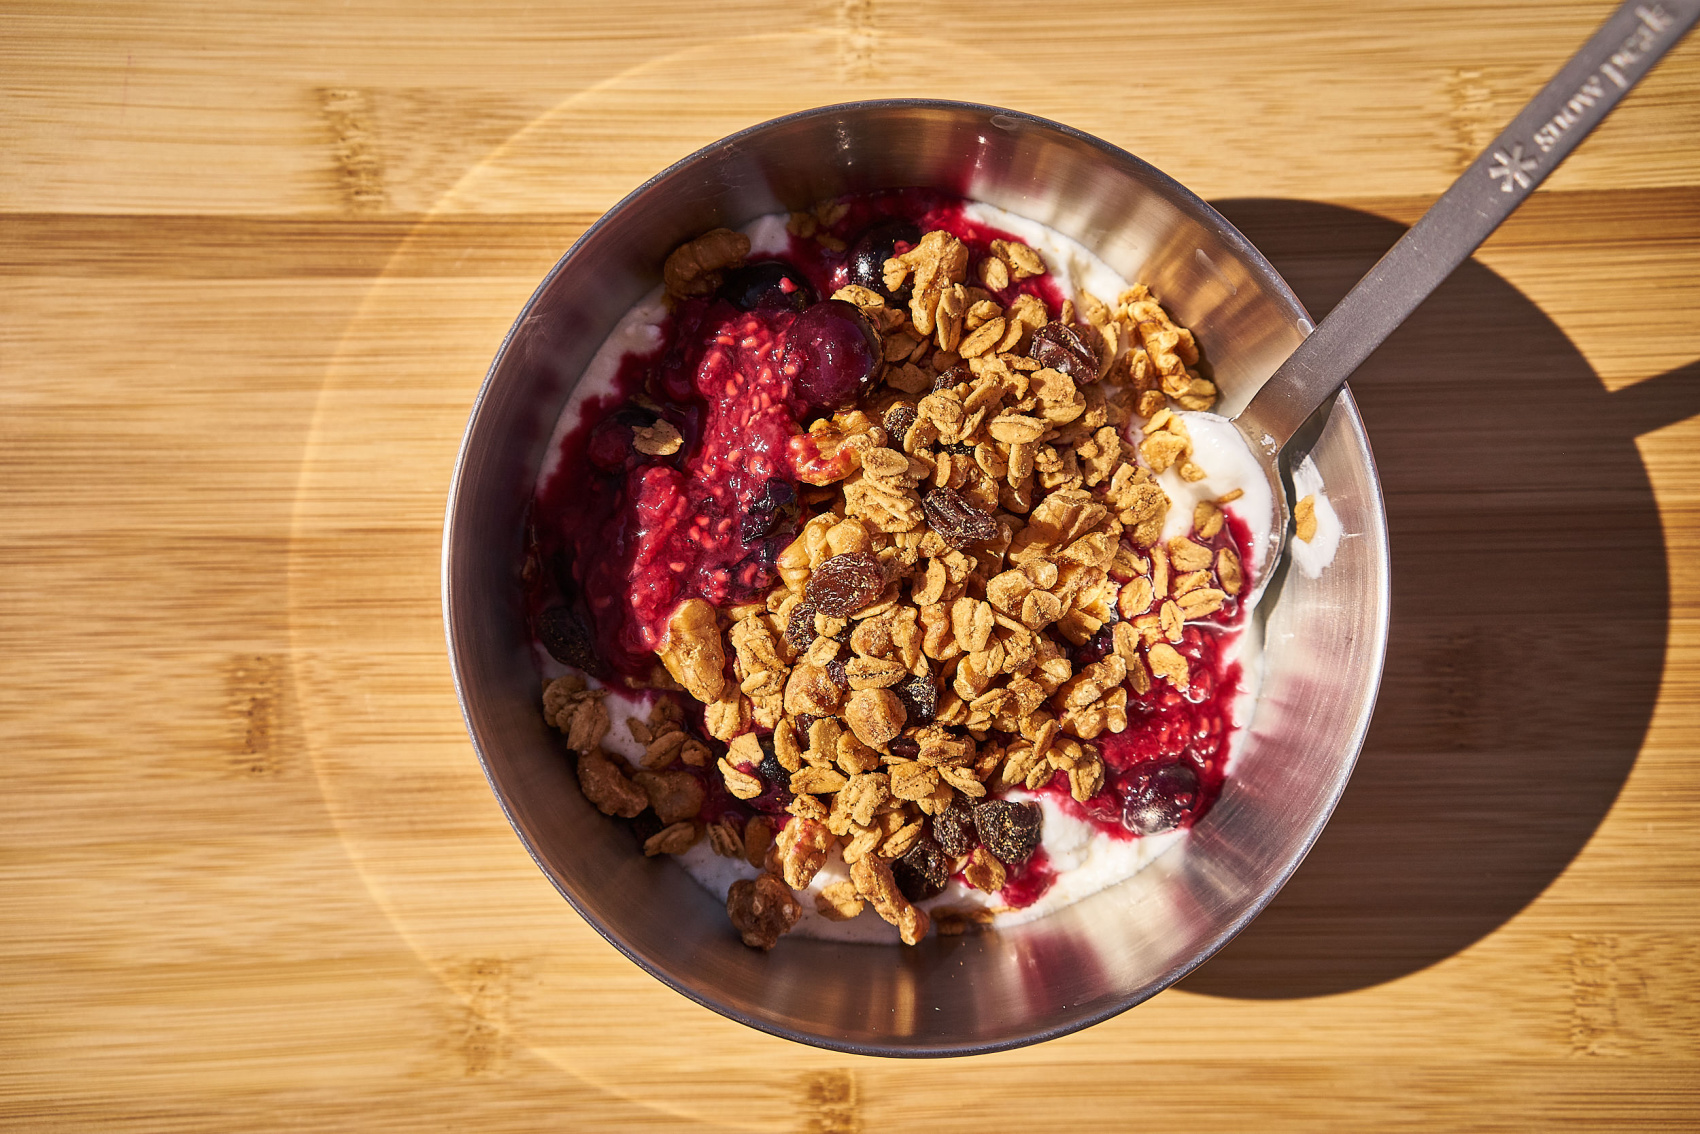 Yogurt with stewed berries and granola is a super easy car camping breakfast idea! Click through for the entire recipe and video tutorial. #campfood #camping #campbreakfast www.amandaoutside.com